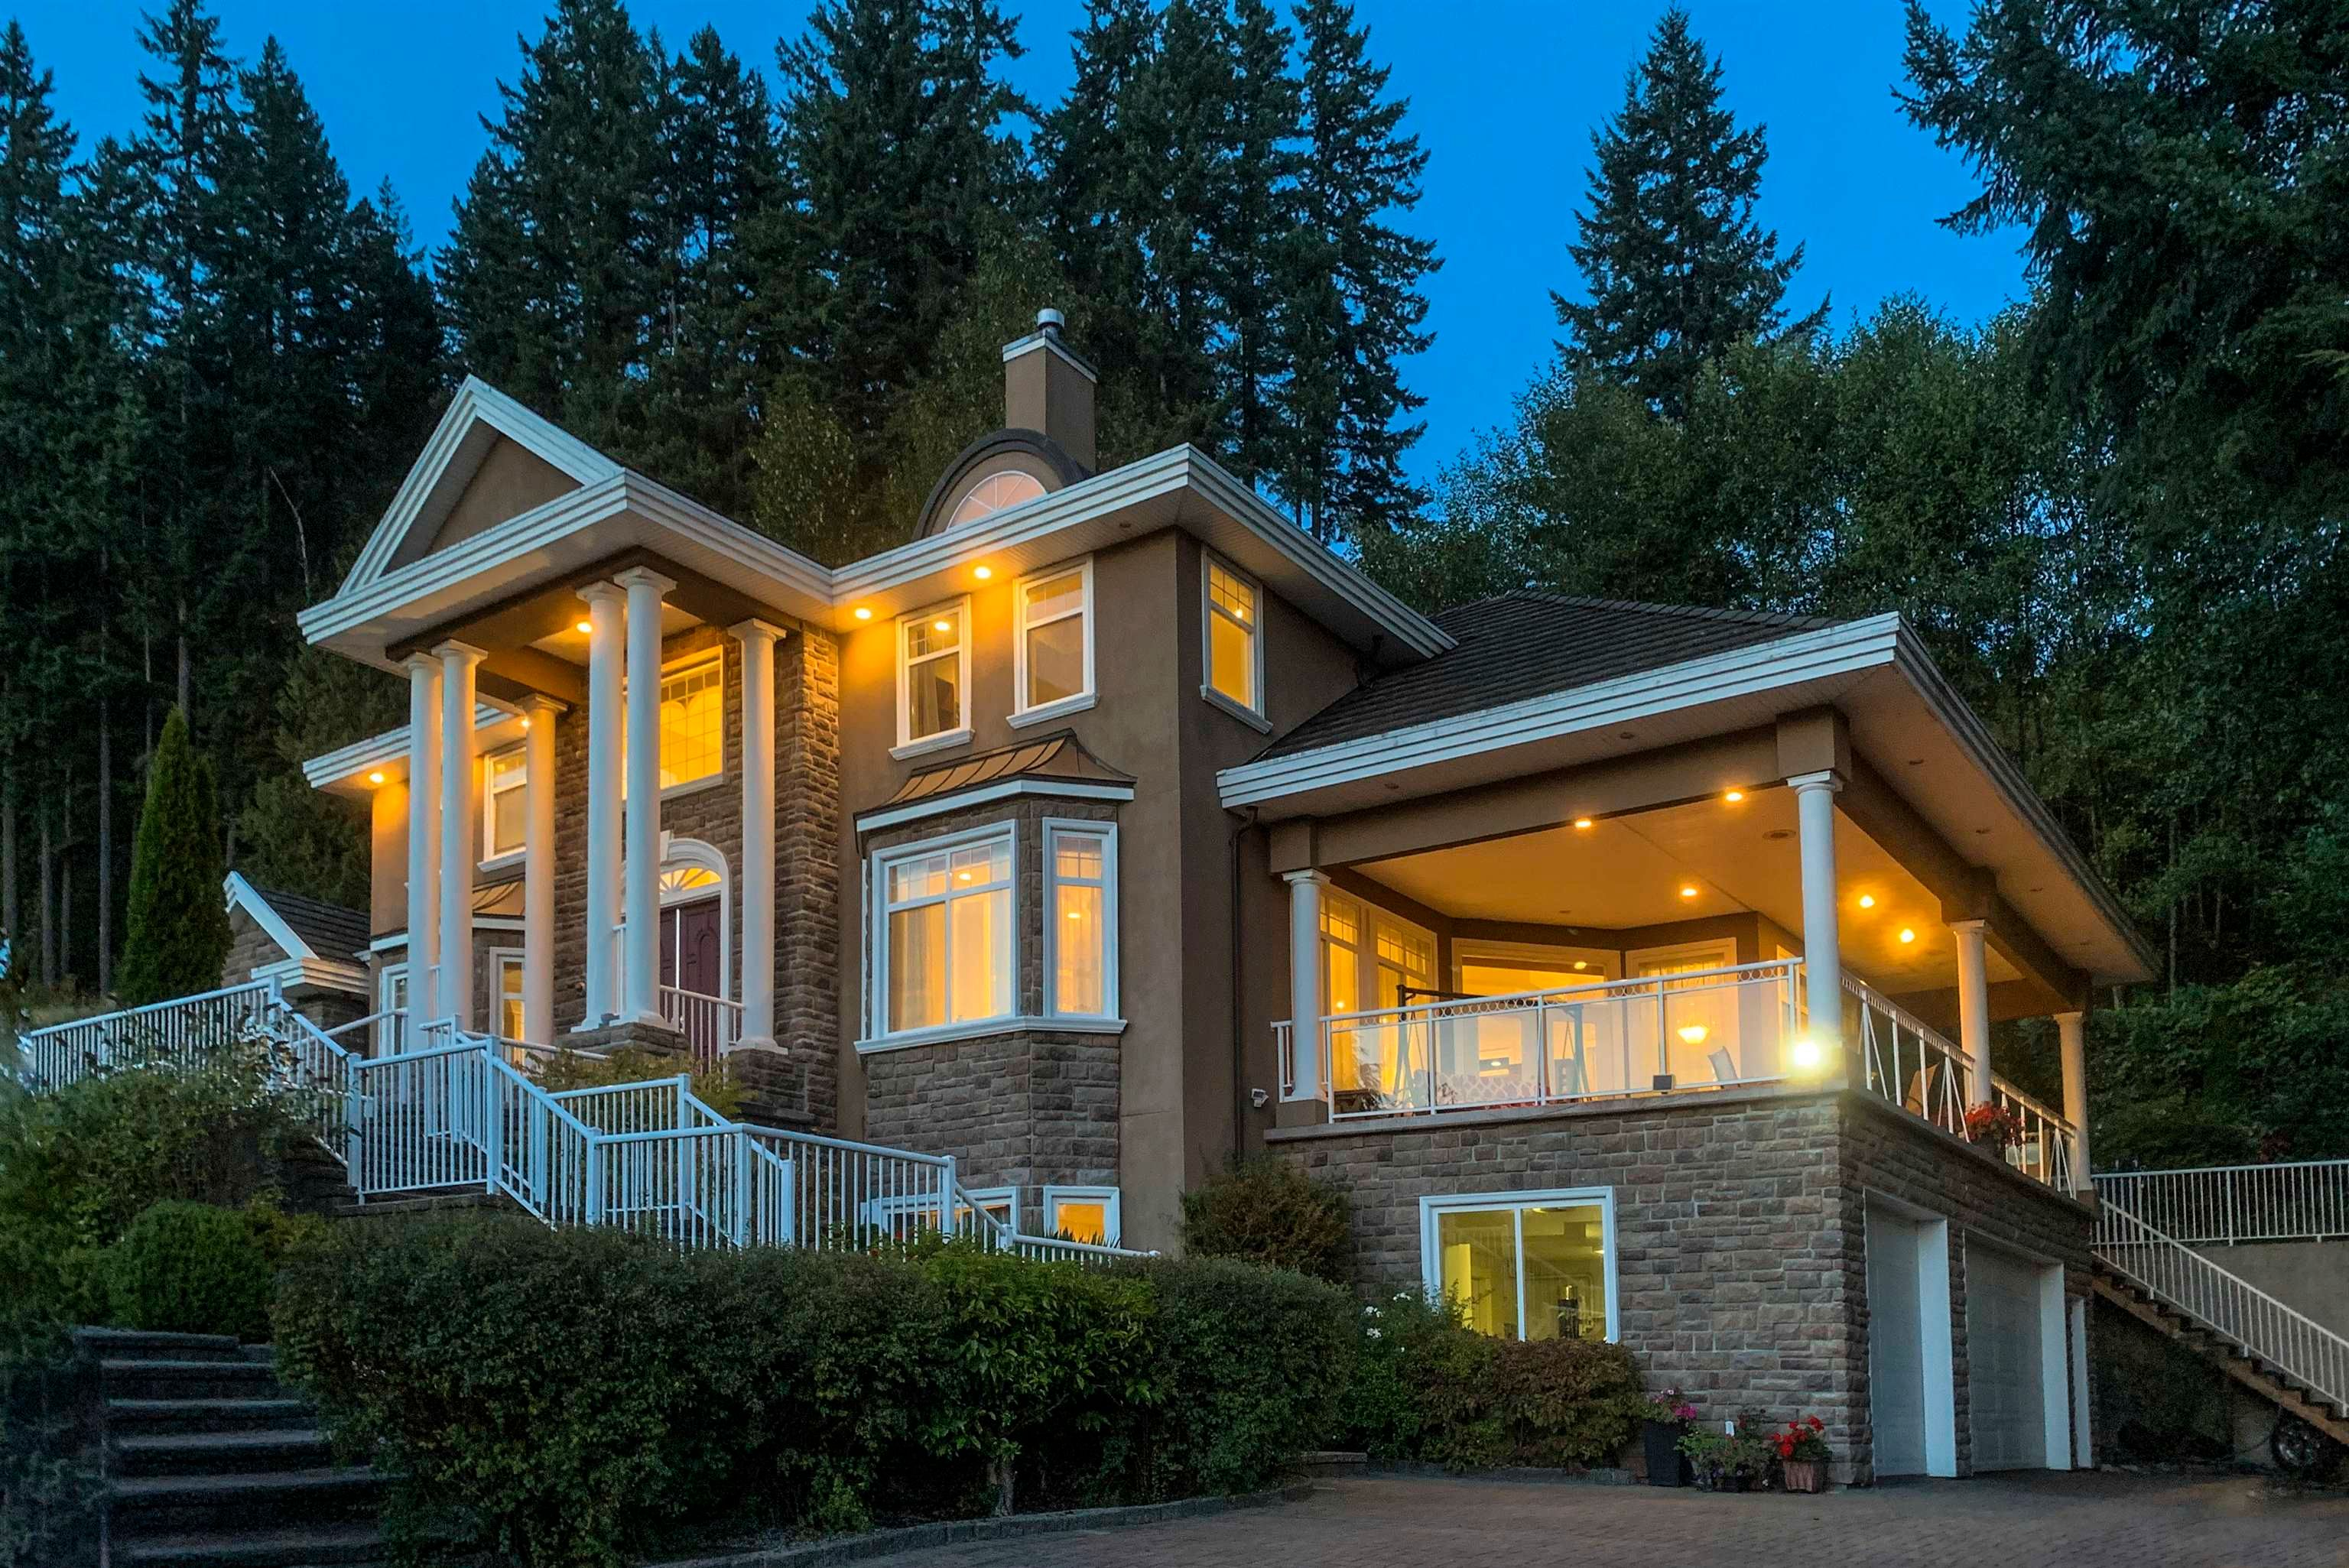 """Main Photo: 255 ALPINE Drive: Anmore House for sale in """"ANMORE ESTATES"""" (Port Moody)  : MLS®# R2602462"""